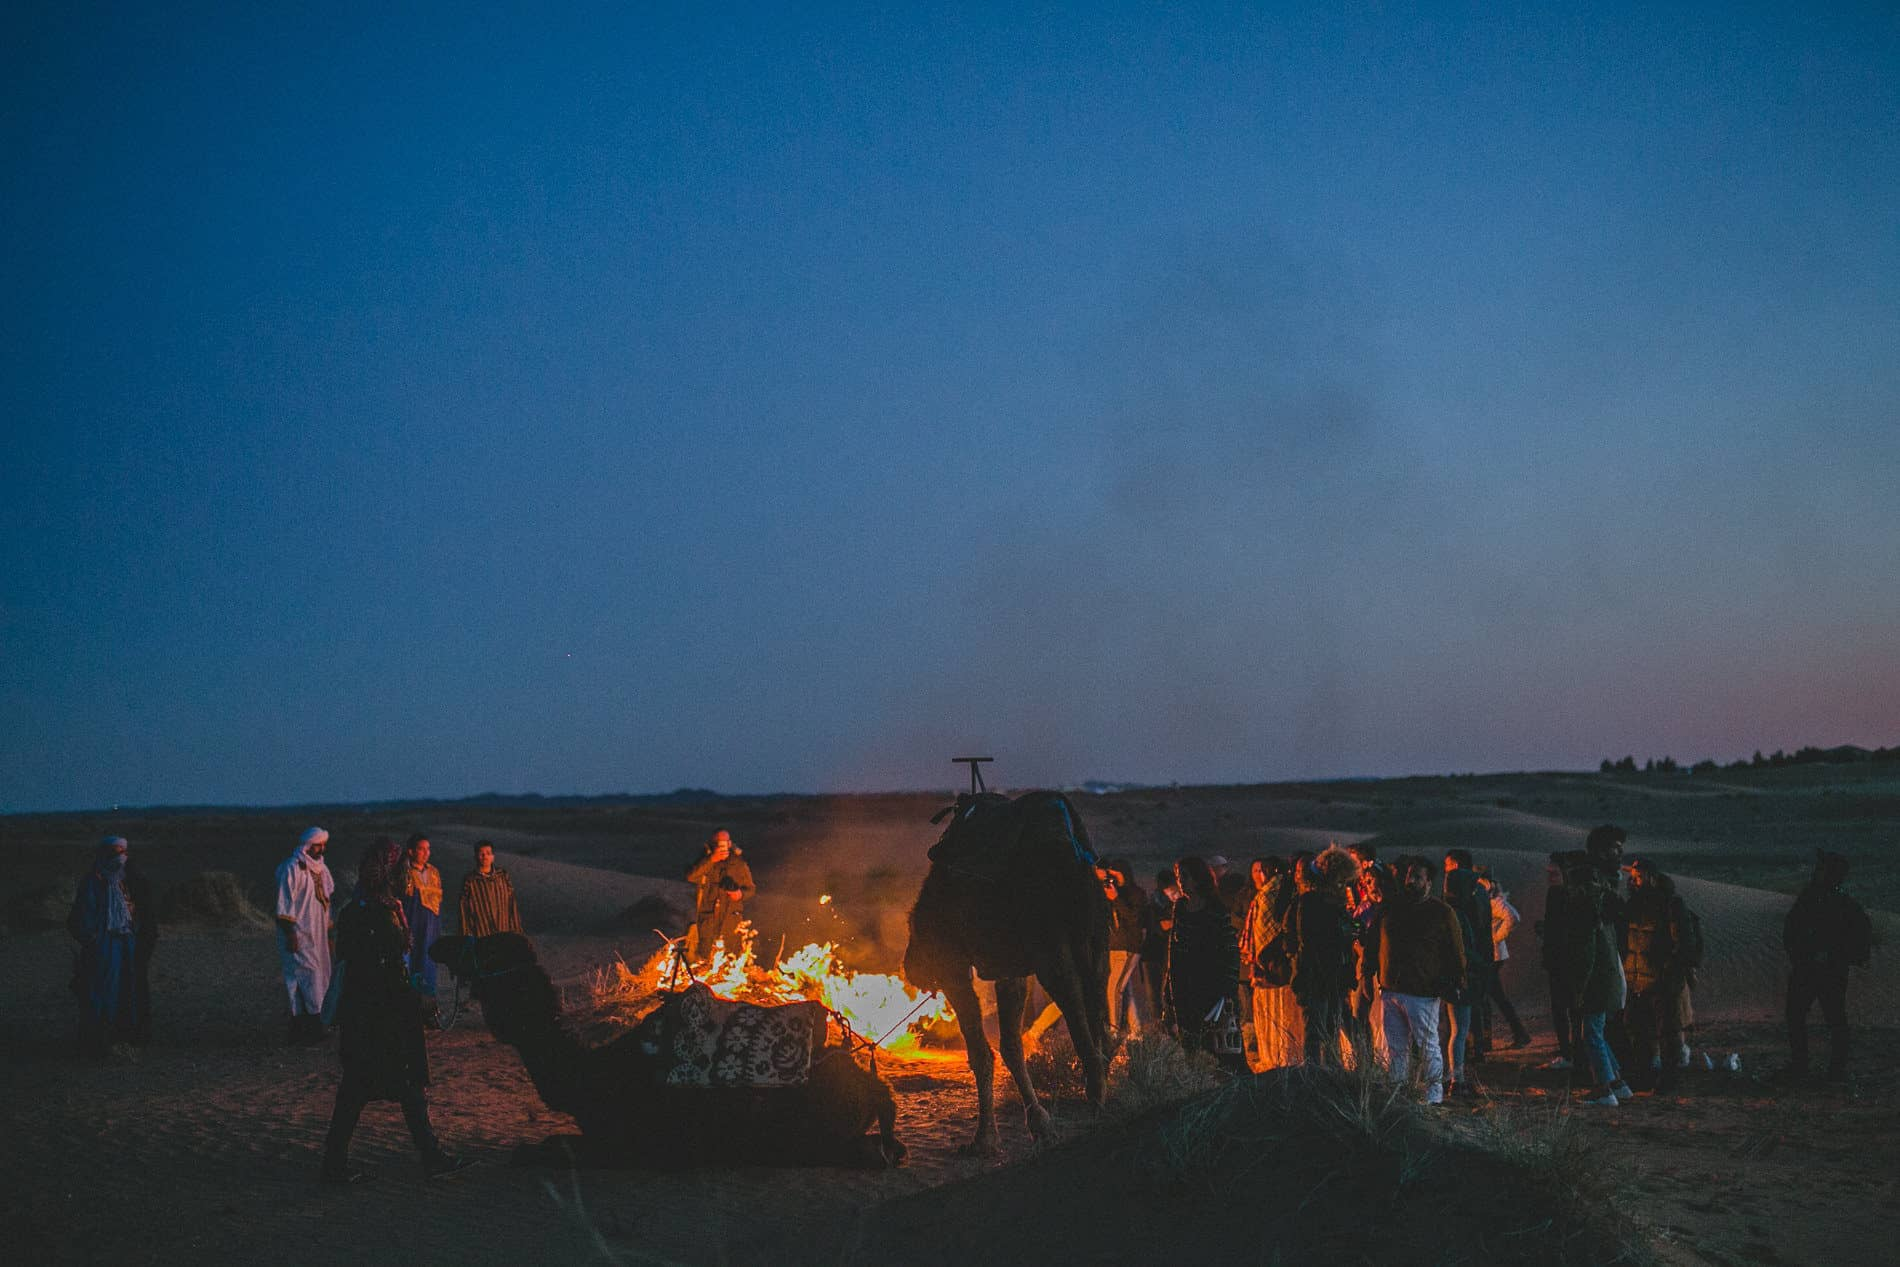 bonfire in the middle of the desert with camels